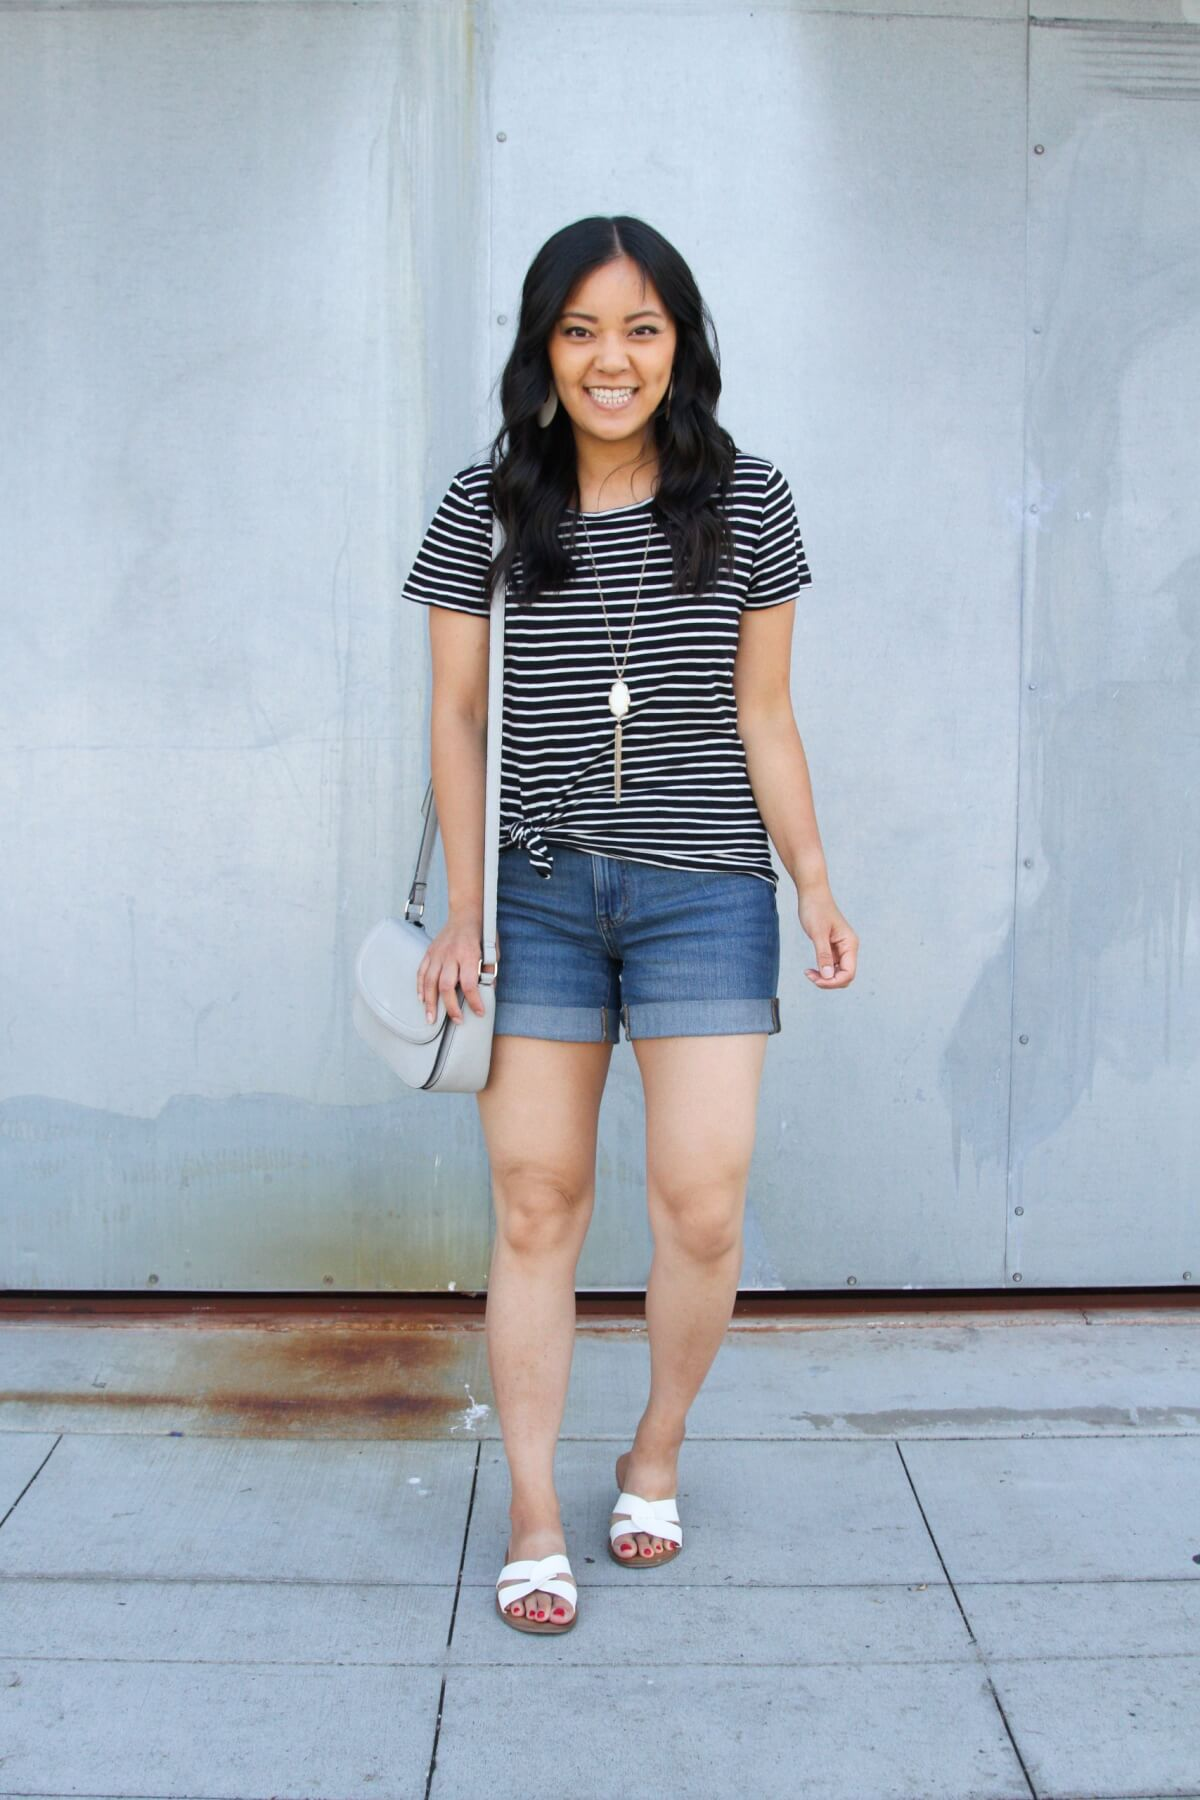 Casual Summer Outfit: black and white striped tee + denim shorts + white slide sandals + pendant necklace + grey crossbody bag